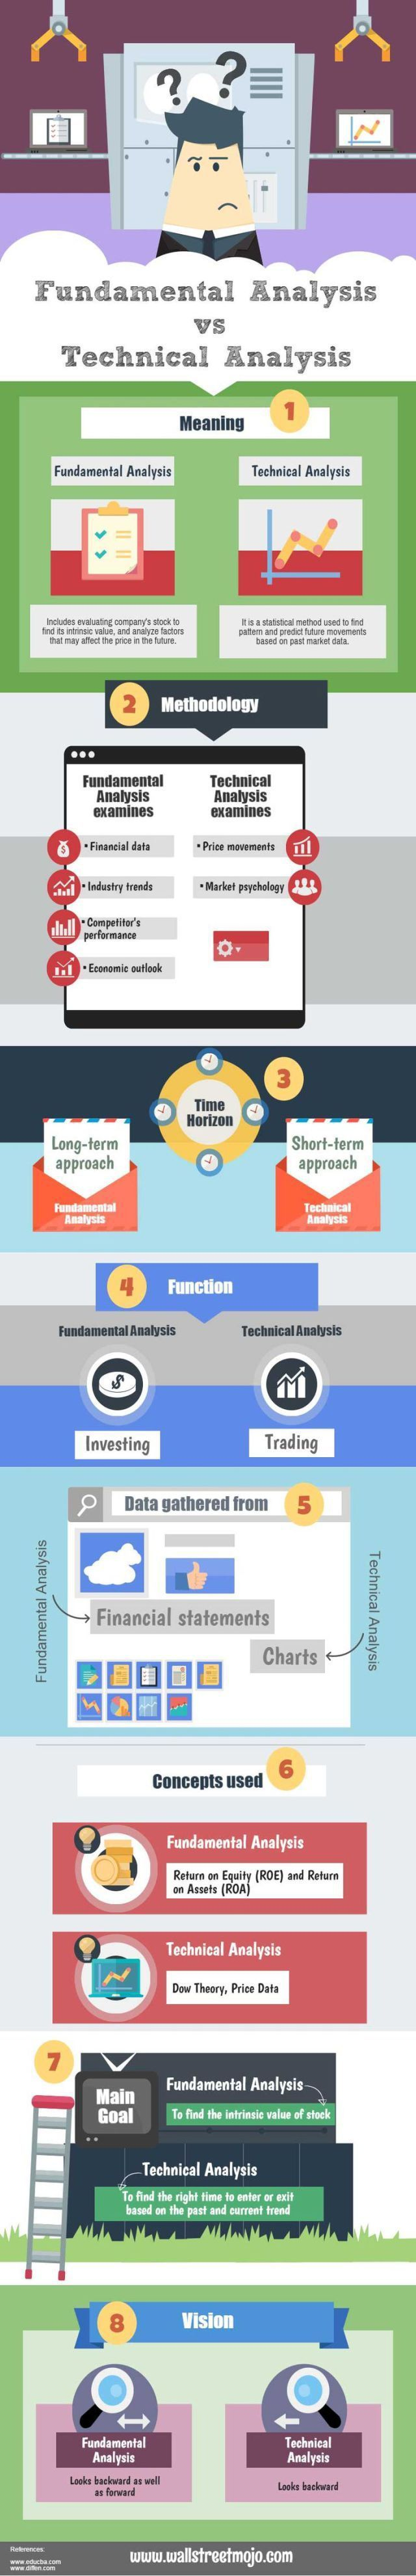 Trading infographic : Trading infographic : Choosing a correct path to invest in stock market means pl